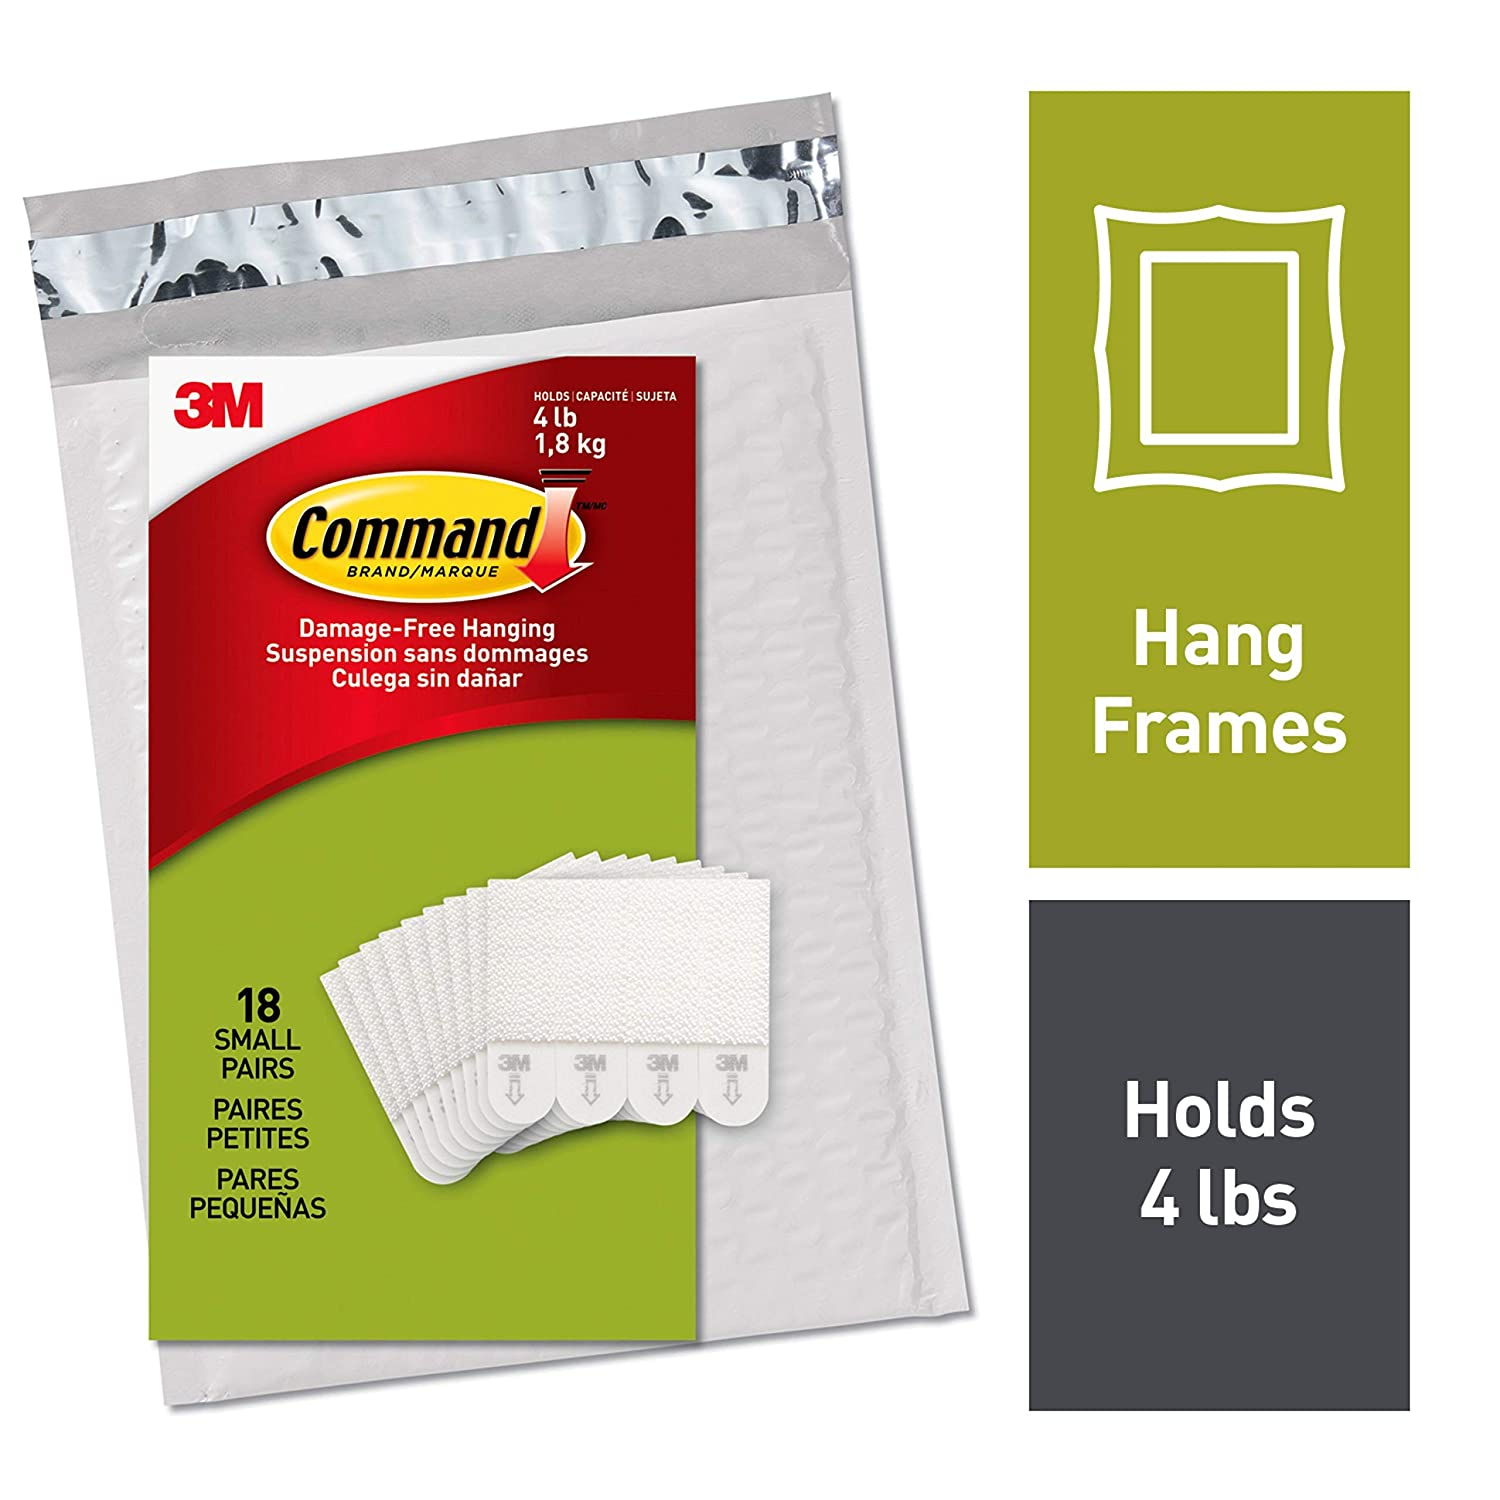 Command by 3M Small Picture Hanging Strips, Create Gallery Walls, Strong and Versatile, Hangs up to 9 frames